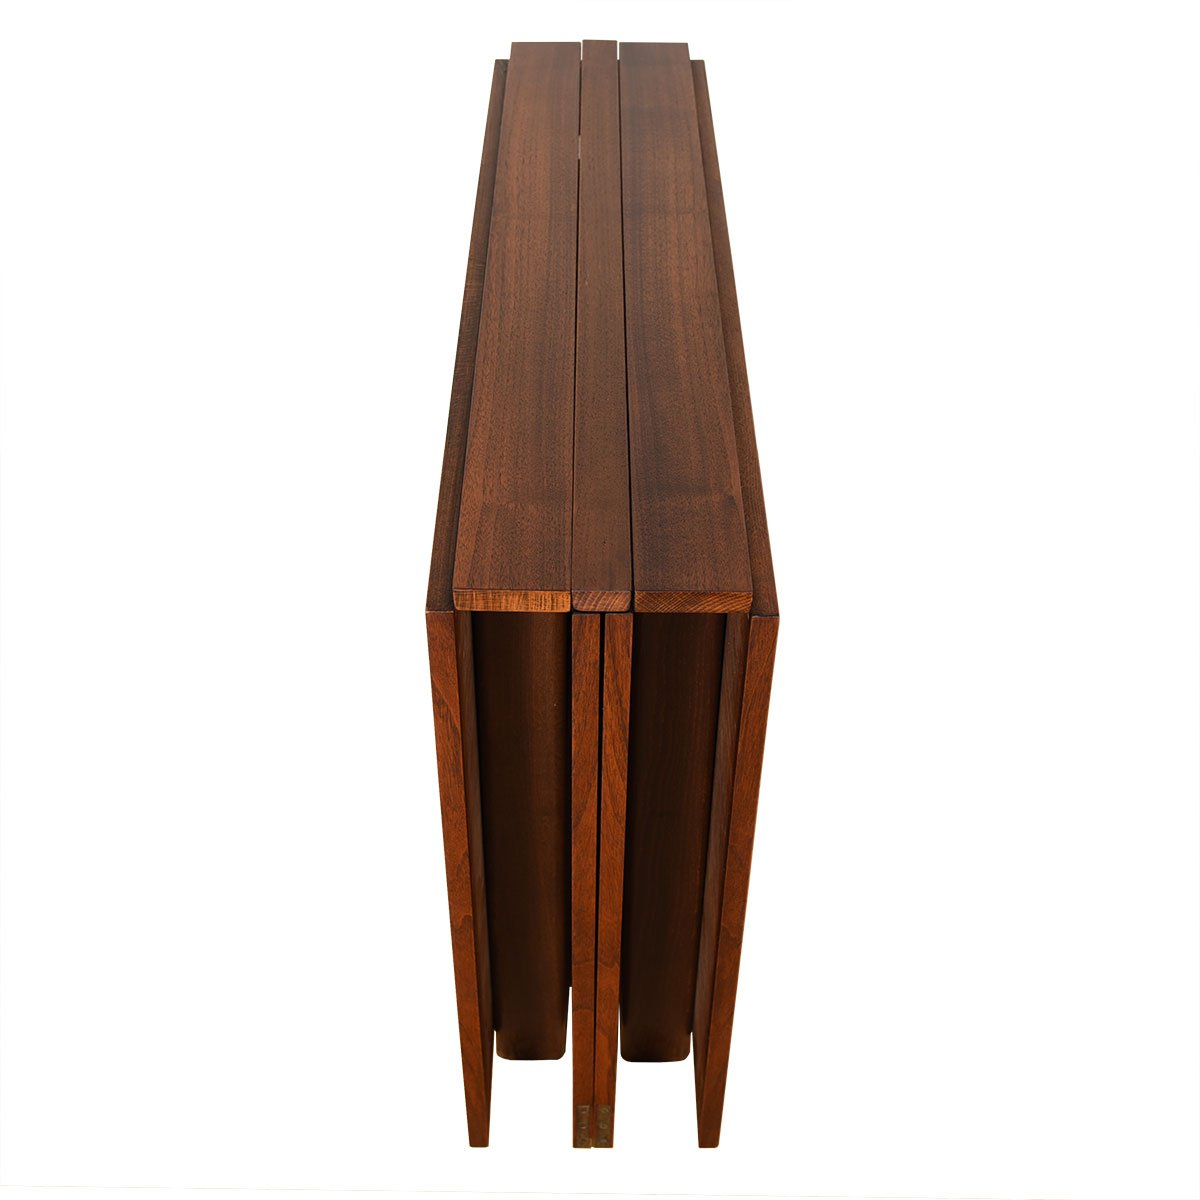 Iconic Super Expanding 'Maria Flap' Swedish Rosewood Dining Table